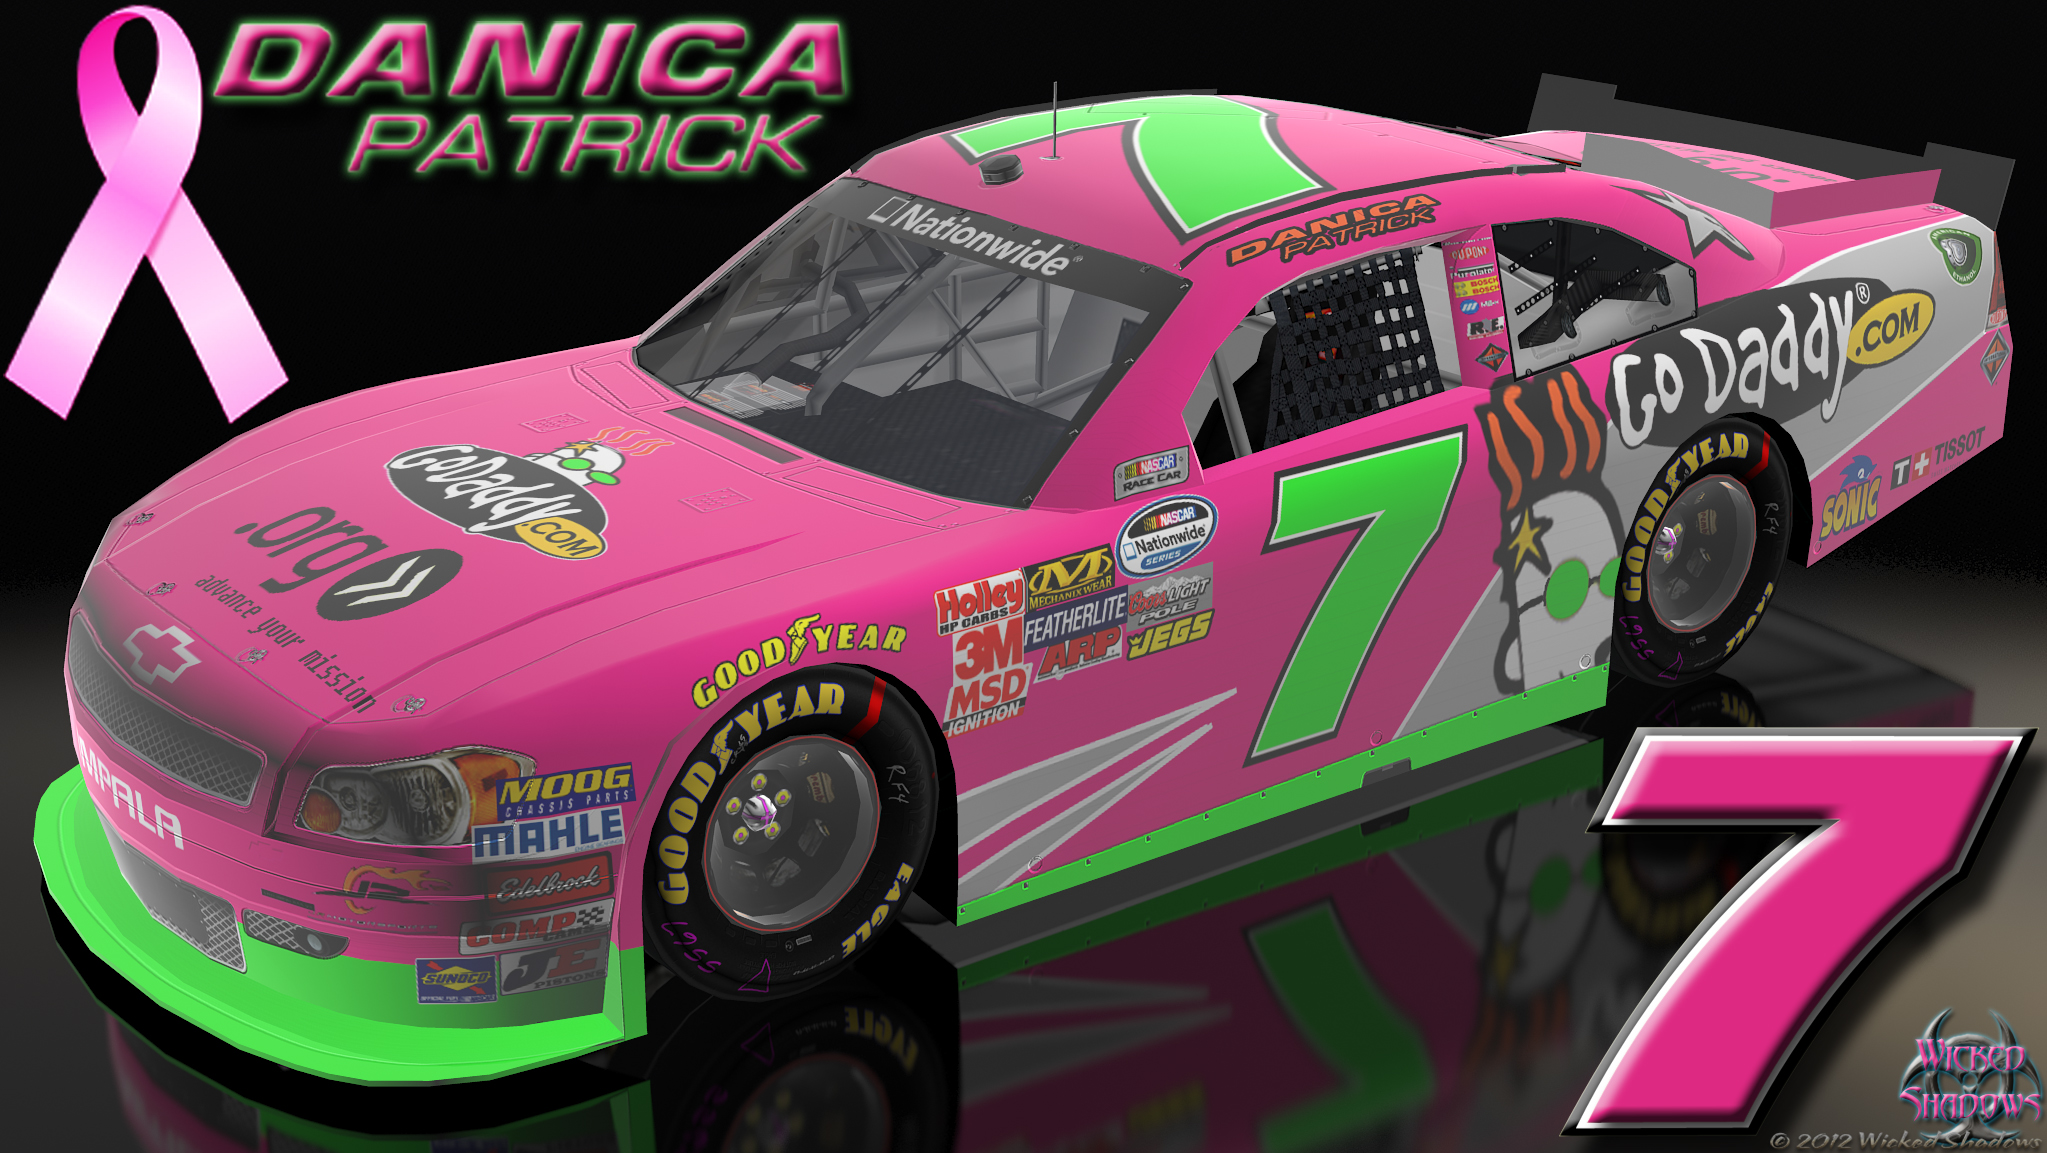 Wallpapers By Wicked Shadows Danica Patrick Dale: Wallpapers By Wicked Shadows: Danica Patrick Go Daddy Pink Car